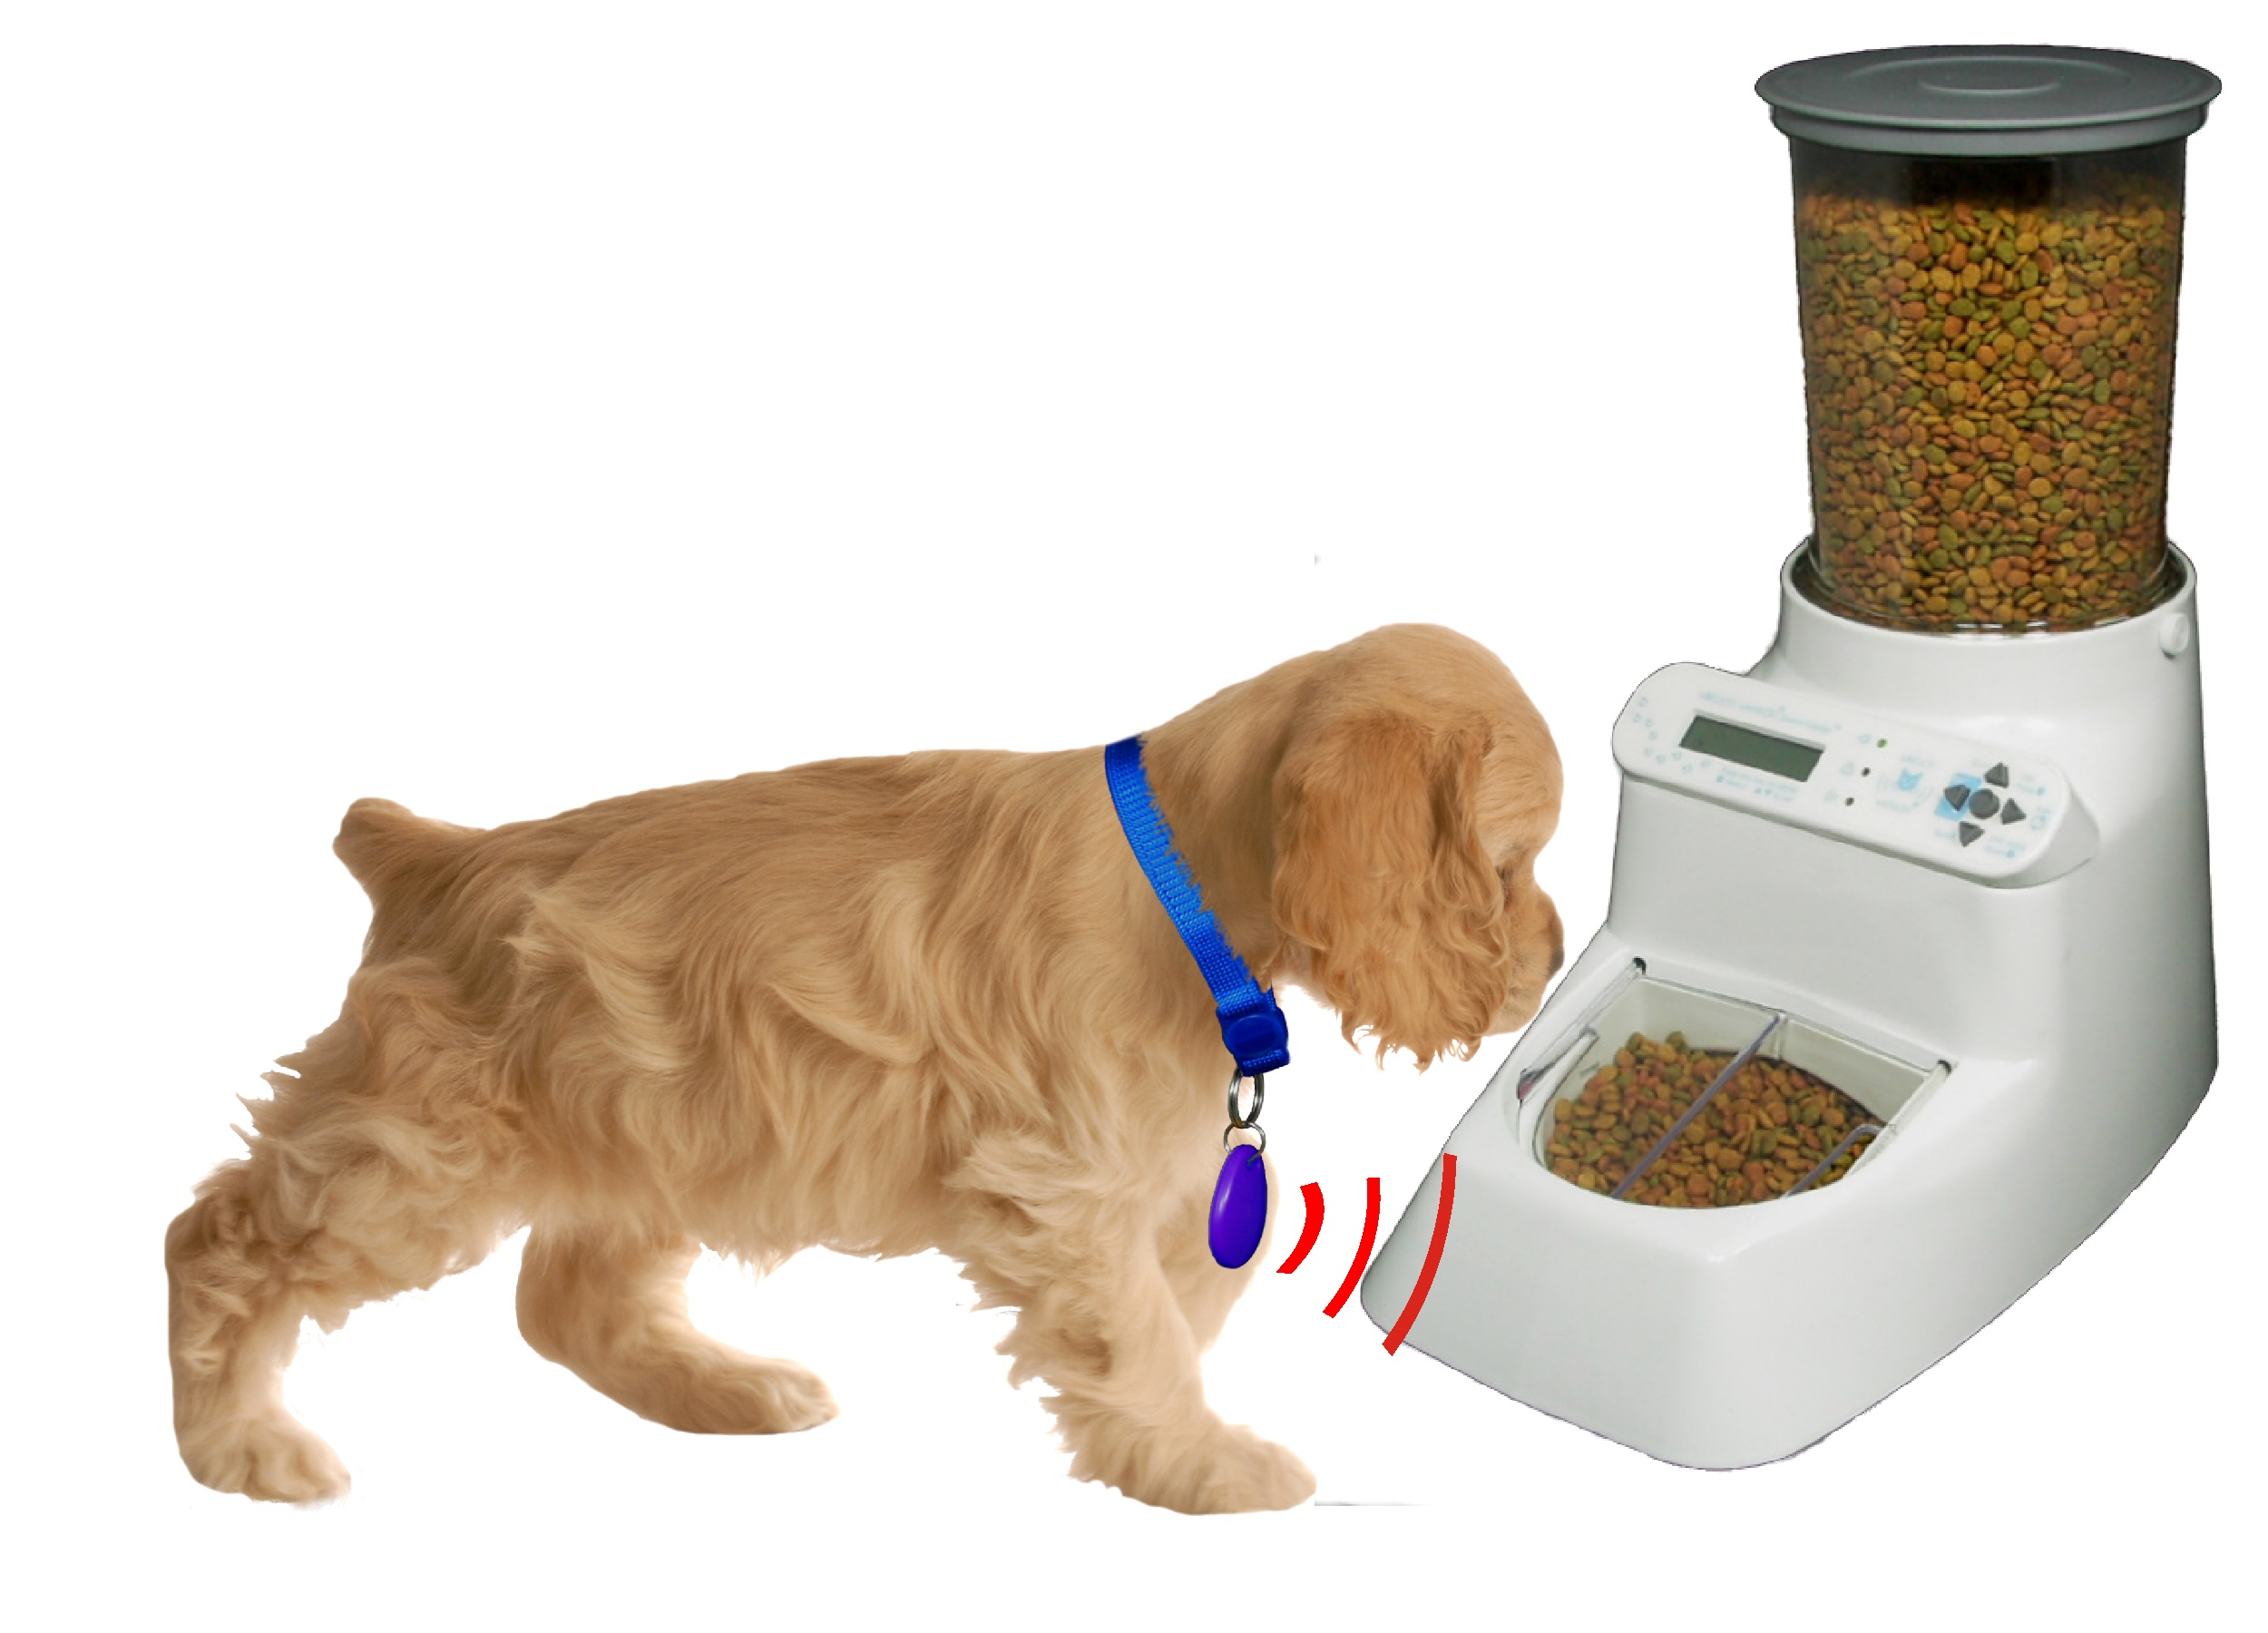 dog critter gallons pet is pin that waterer indestructible the by feeder programmable dispenser automatic water concepts virtually